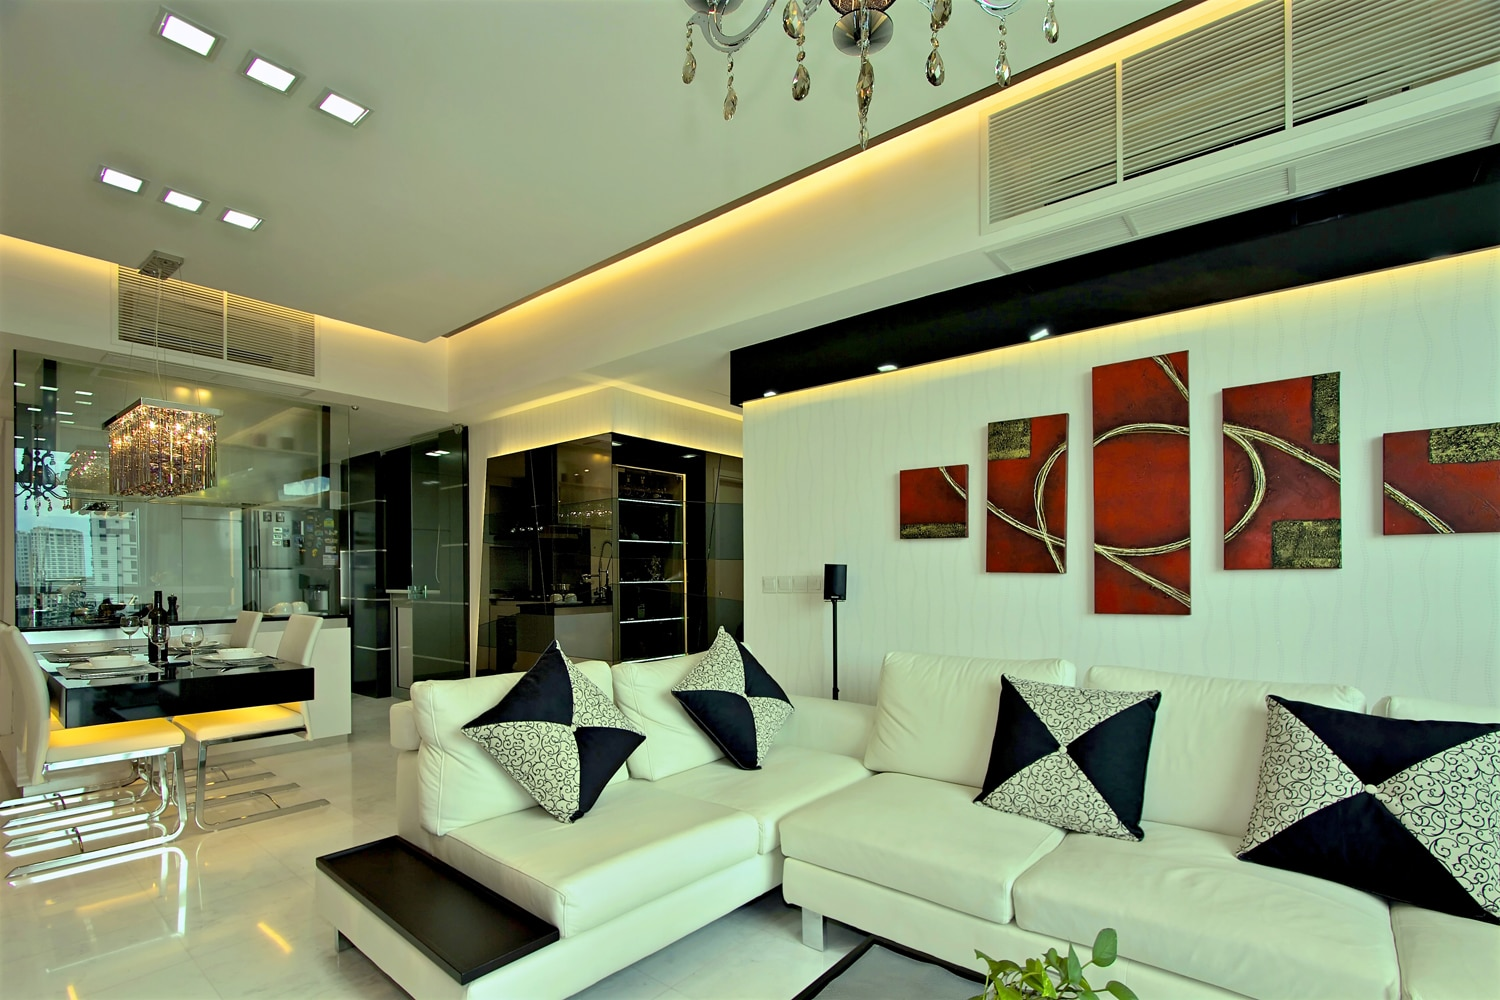 Northwest Interior Design Review Singapore